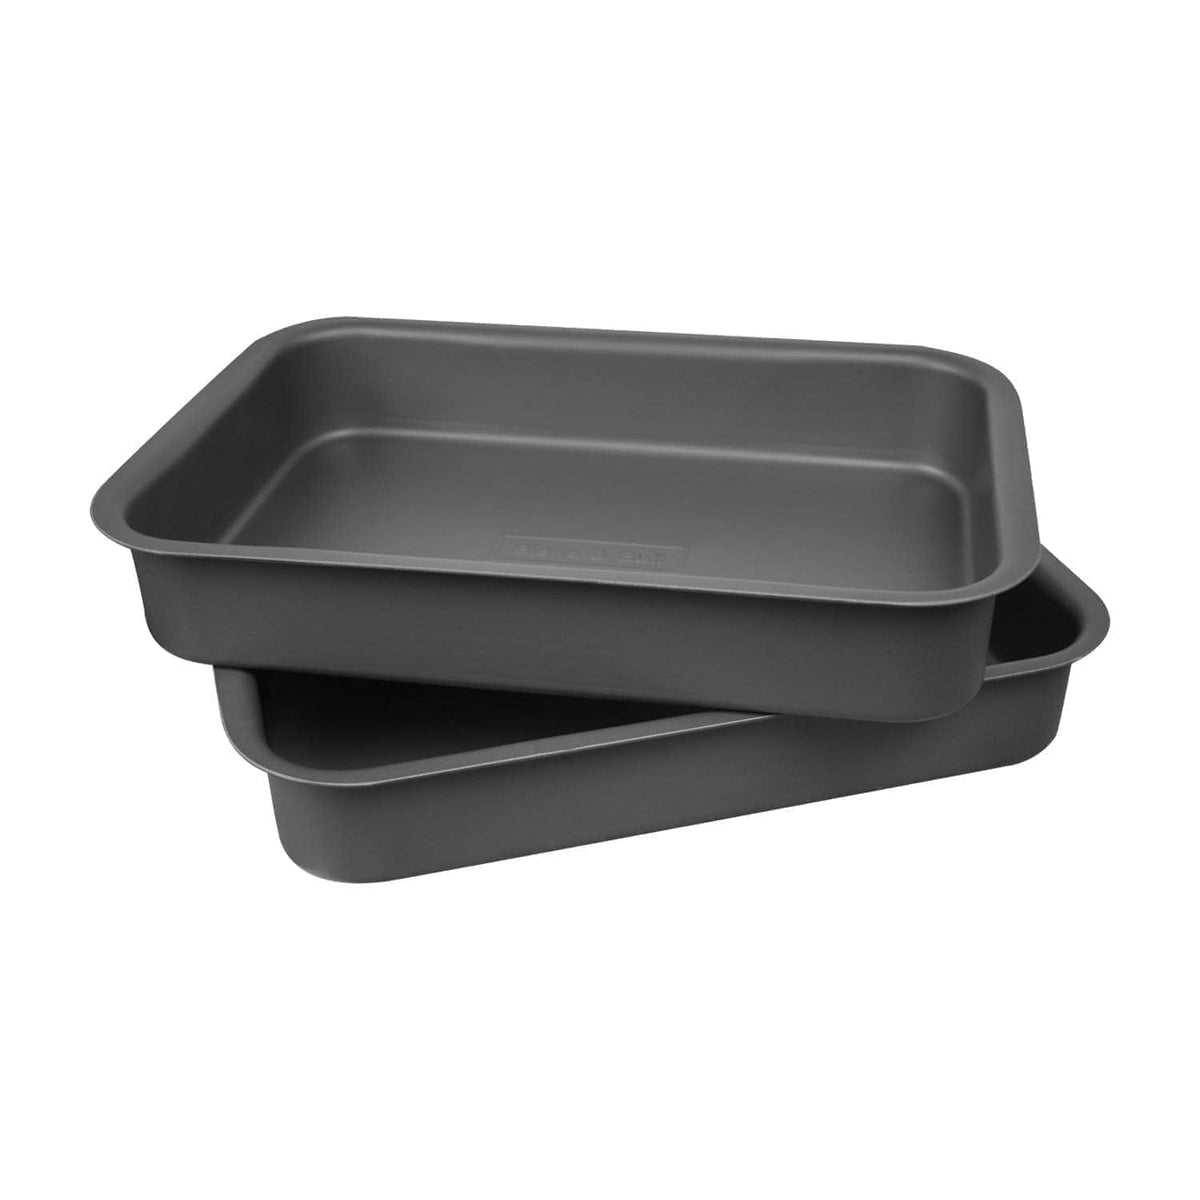 'Fits on runners' roasting tin for use with Aga range cookers 'half oven' size Yes I'd like to upgrade to a set of 2 (saves £5 on individual cost) / Black